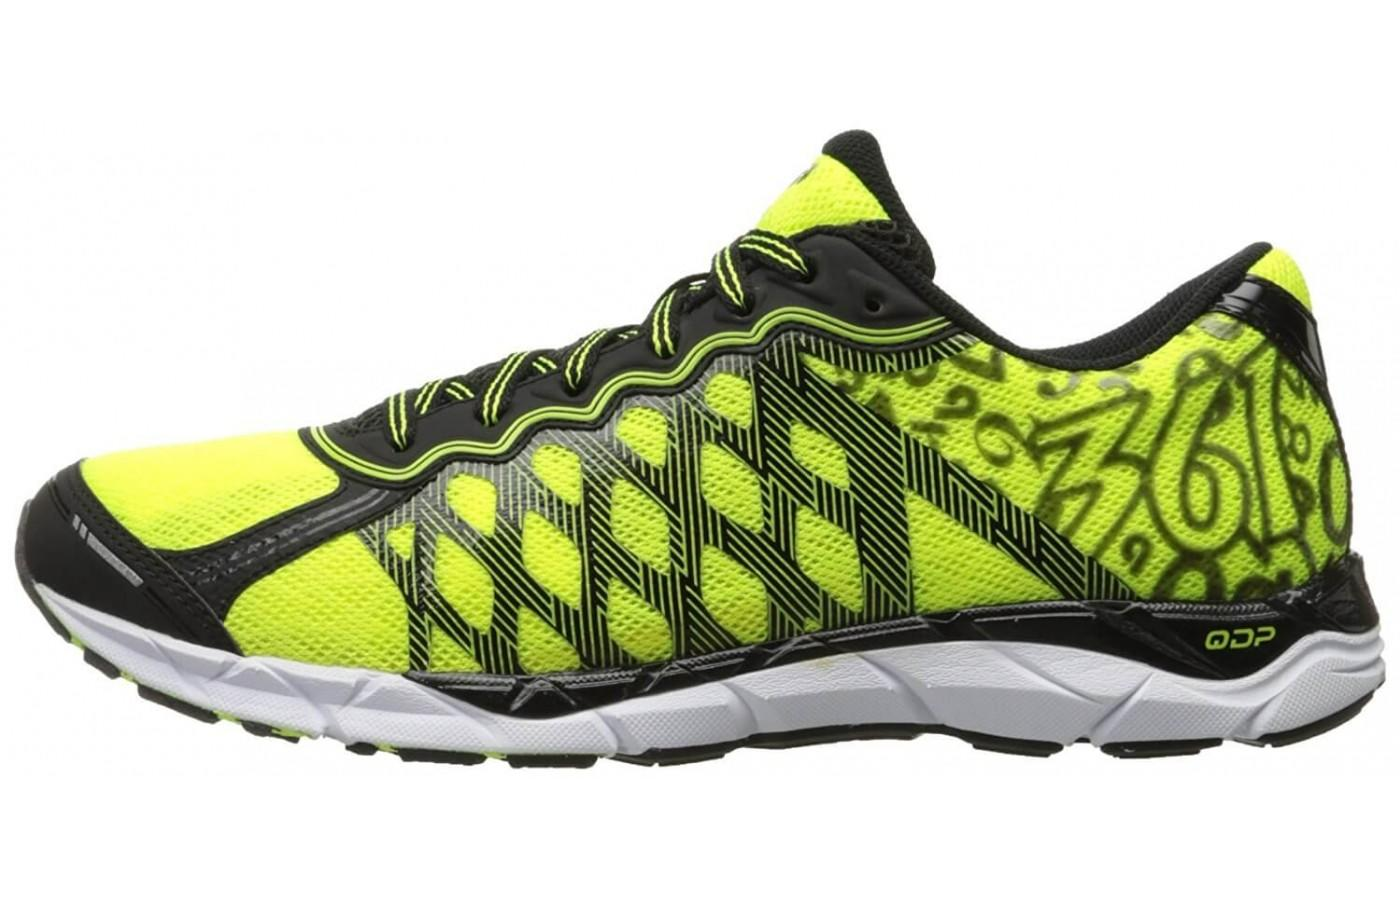 The unconventional design of the 361 KGM2 is likely to polarize most runners.